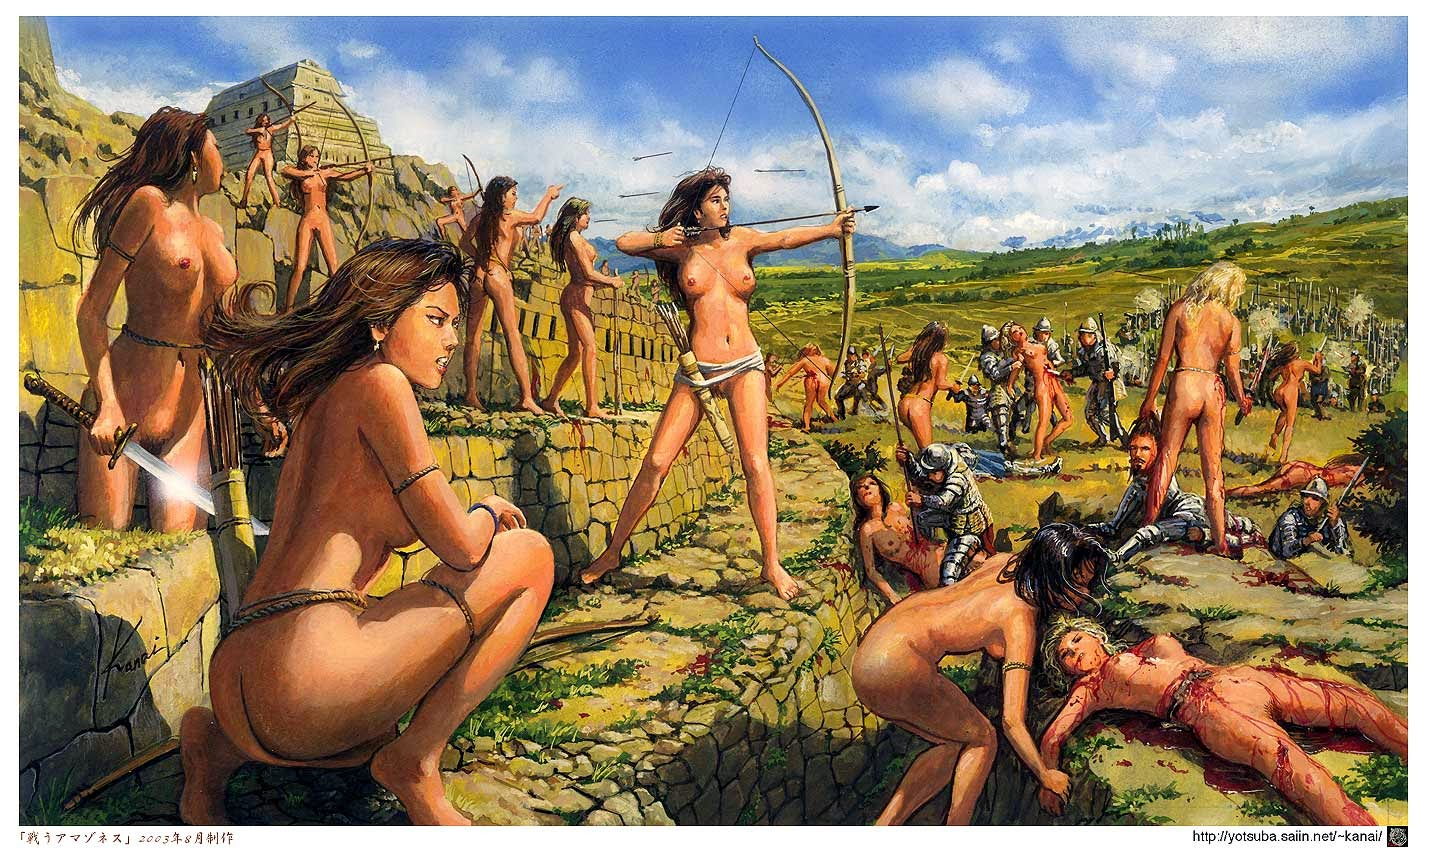 Images of naked amazonian women anime pictures